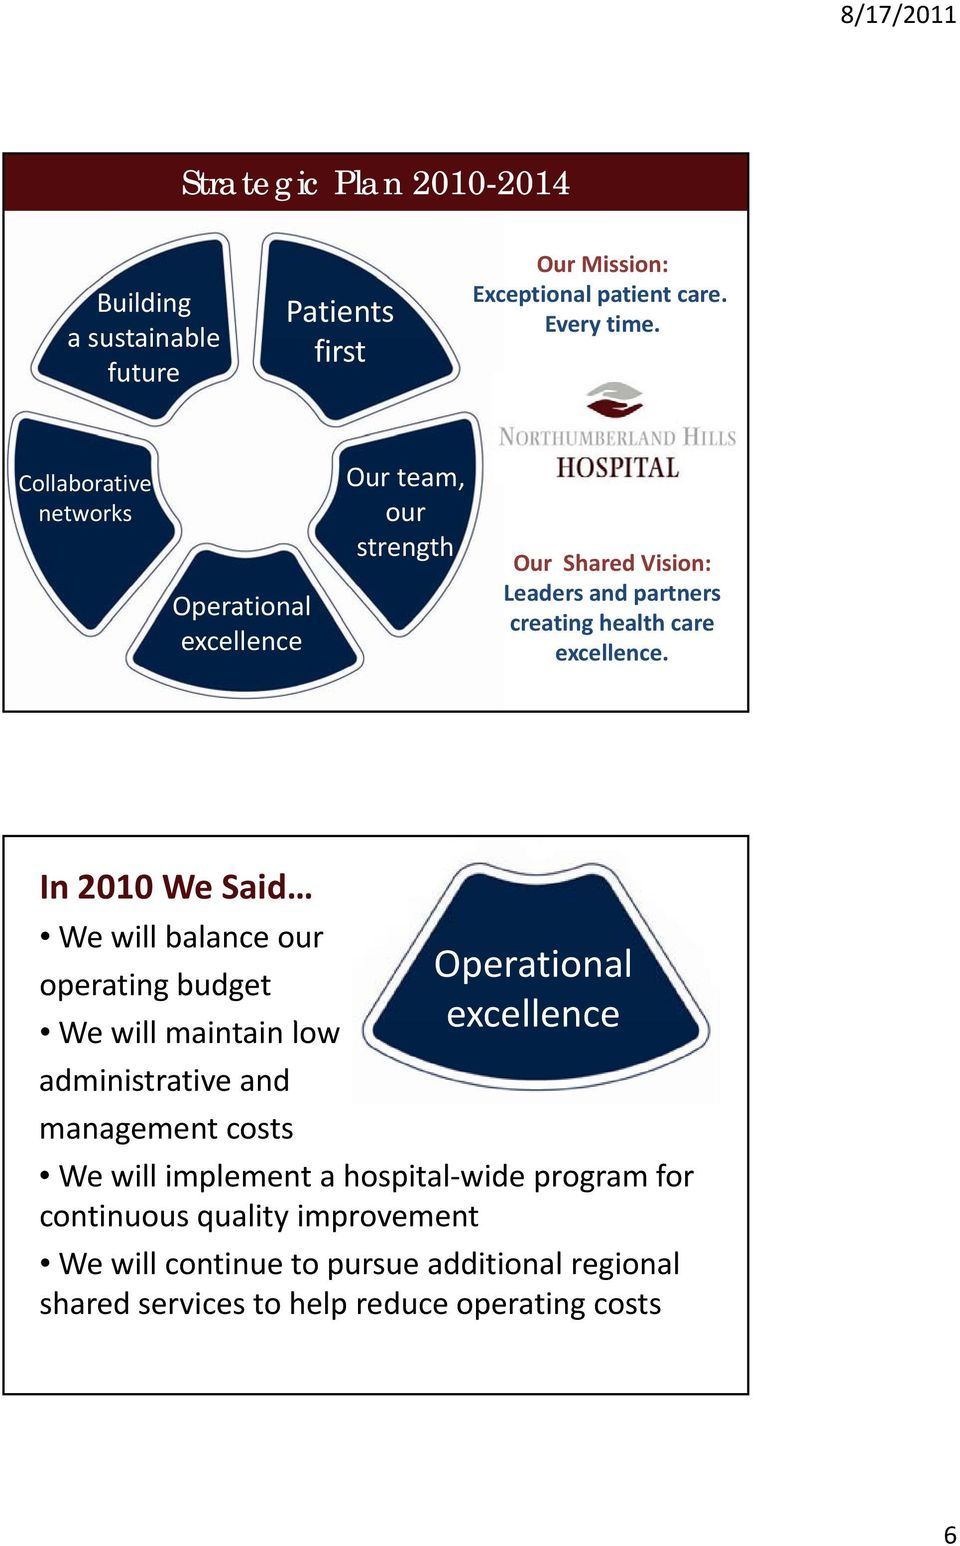 In 2010 We Said We will balance our operating budget Operational Patients excellence first We will maintain i low administrative and management